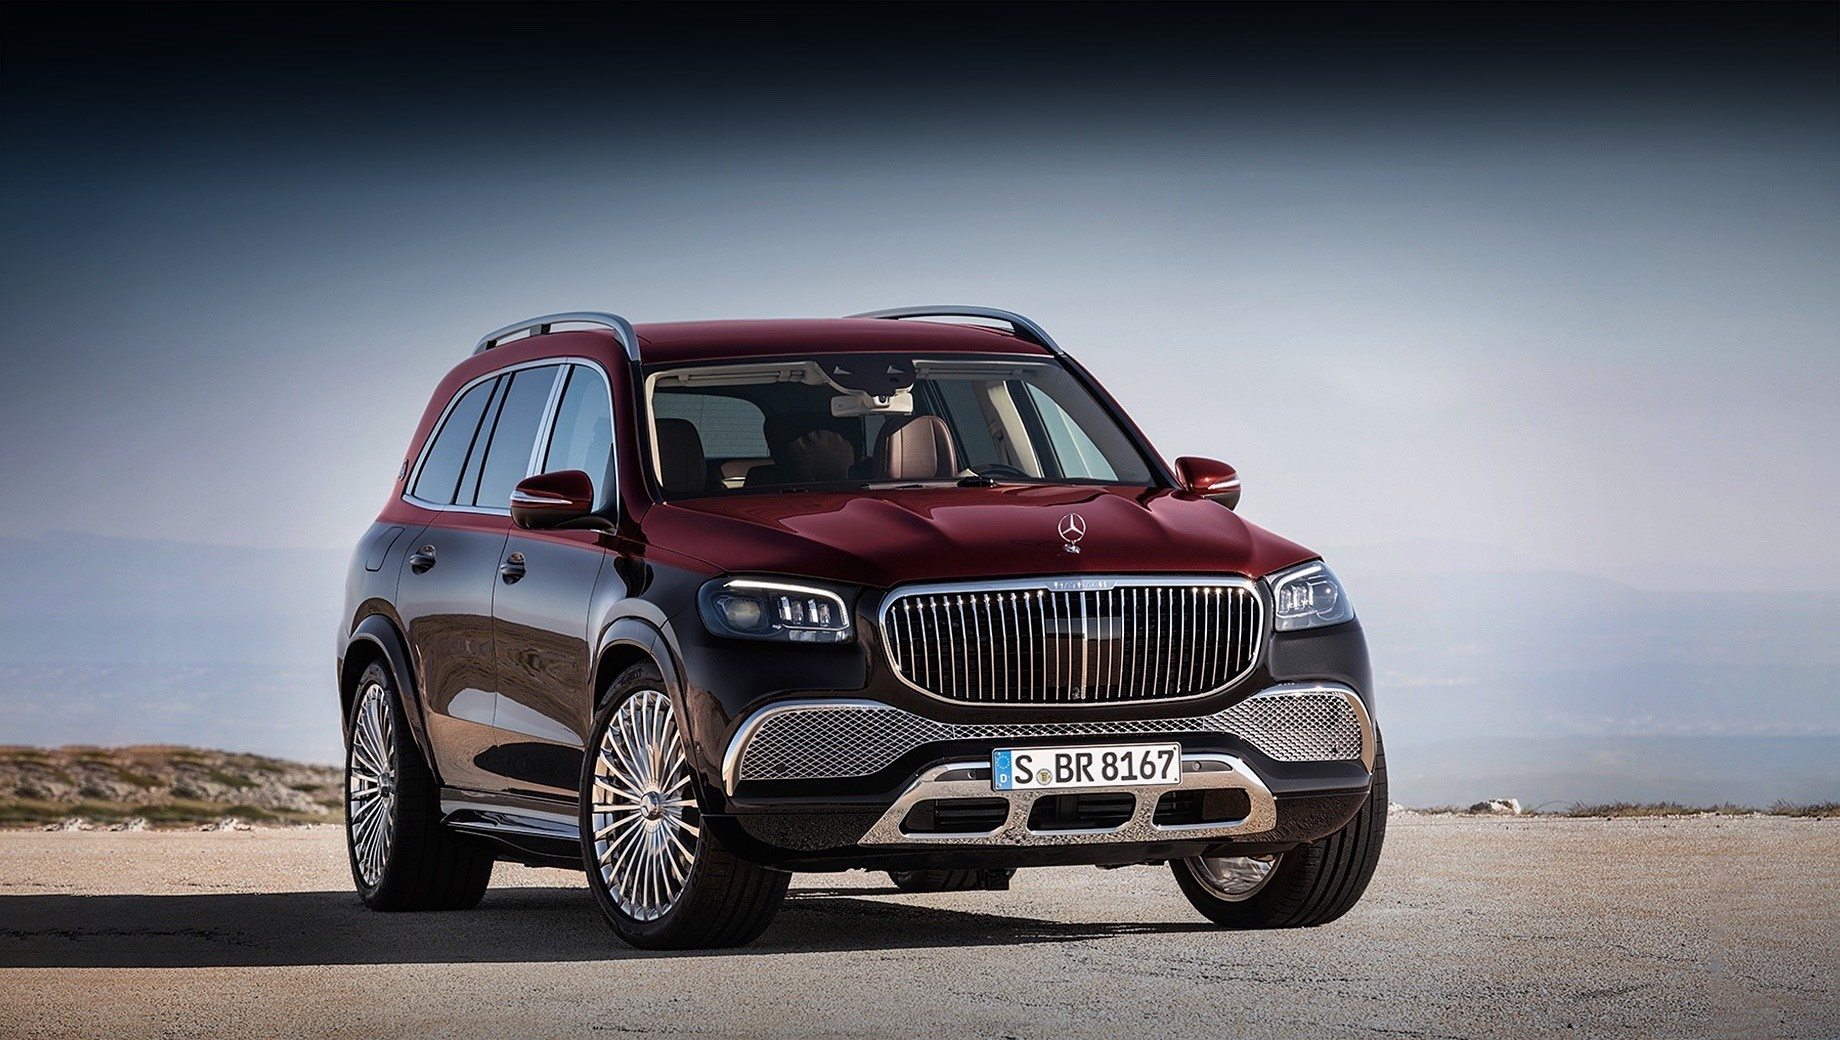 Mercedes-Maybach GLS 600 предъявил адекватный ценник